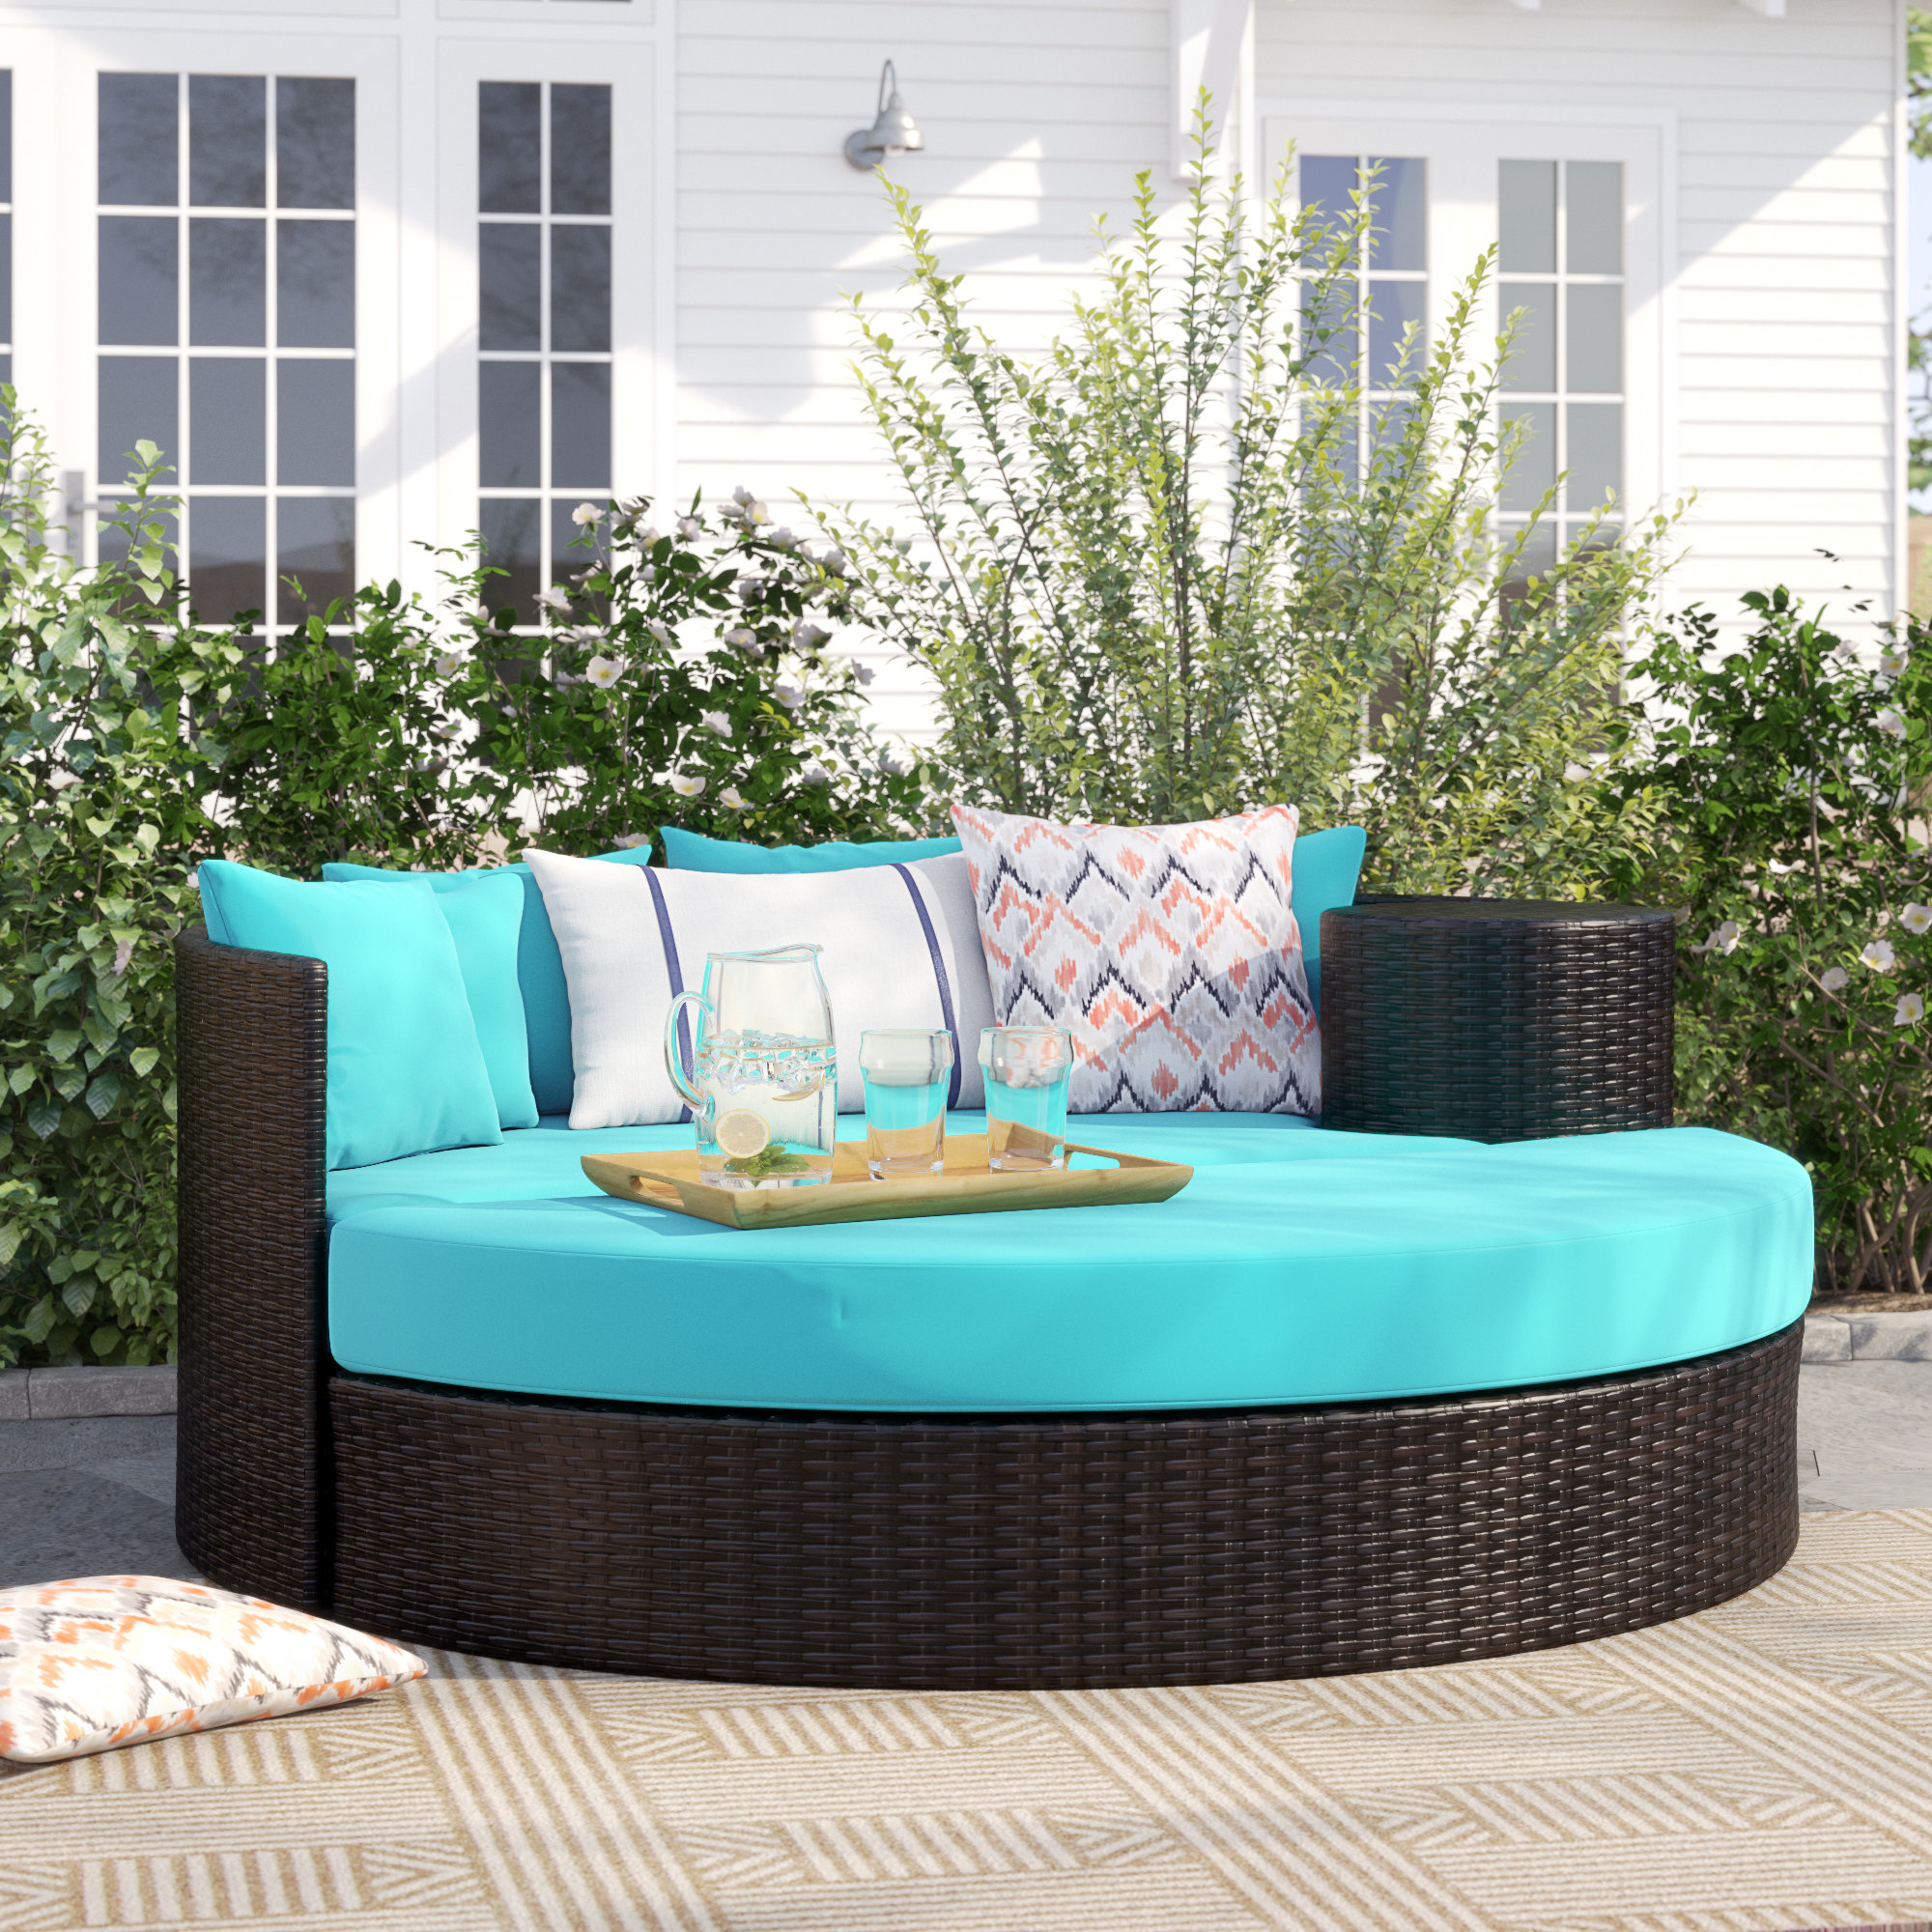 Best And Newest Sol 72 Outdoor Freeport Patio Daybed With Cushion & Reviews Regarding Patio Daybeds With Cushions (View 3 of 20)